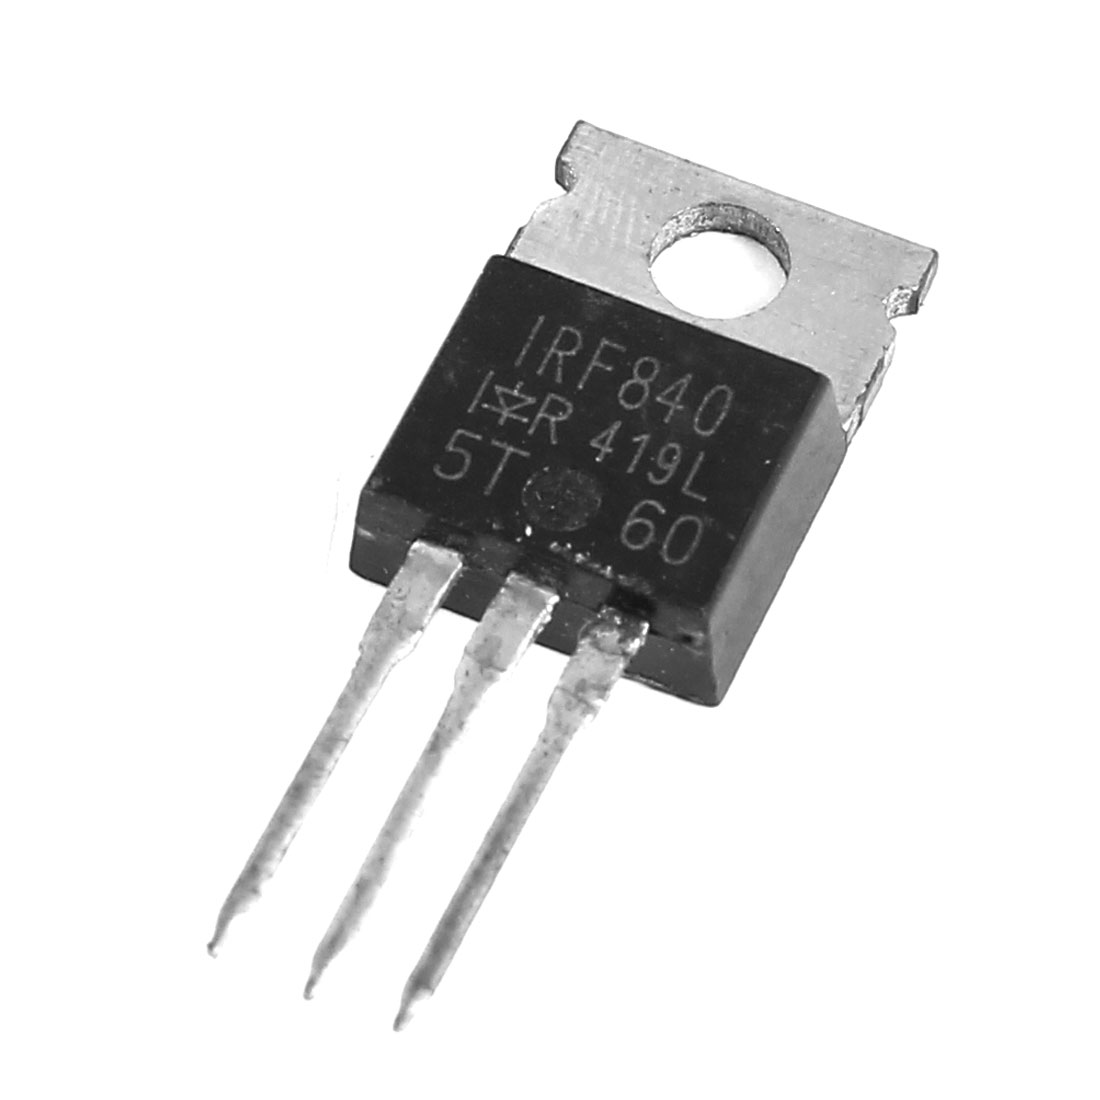 IRF840 8A 500V 3 Pin Terminals TO-220 Package Complementary Semiconductor NPN Silicon Transistor